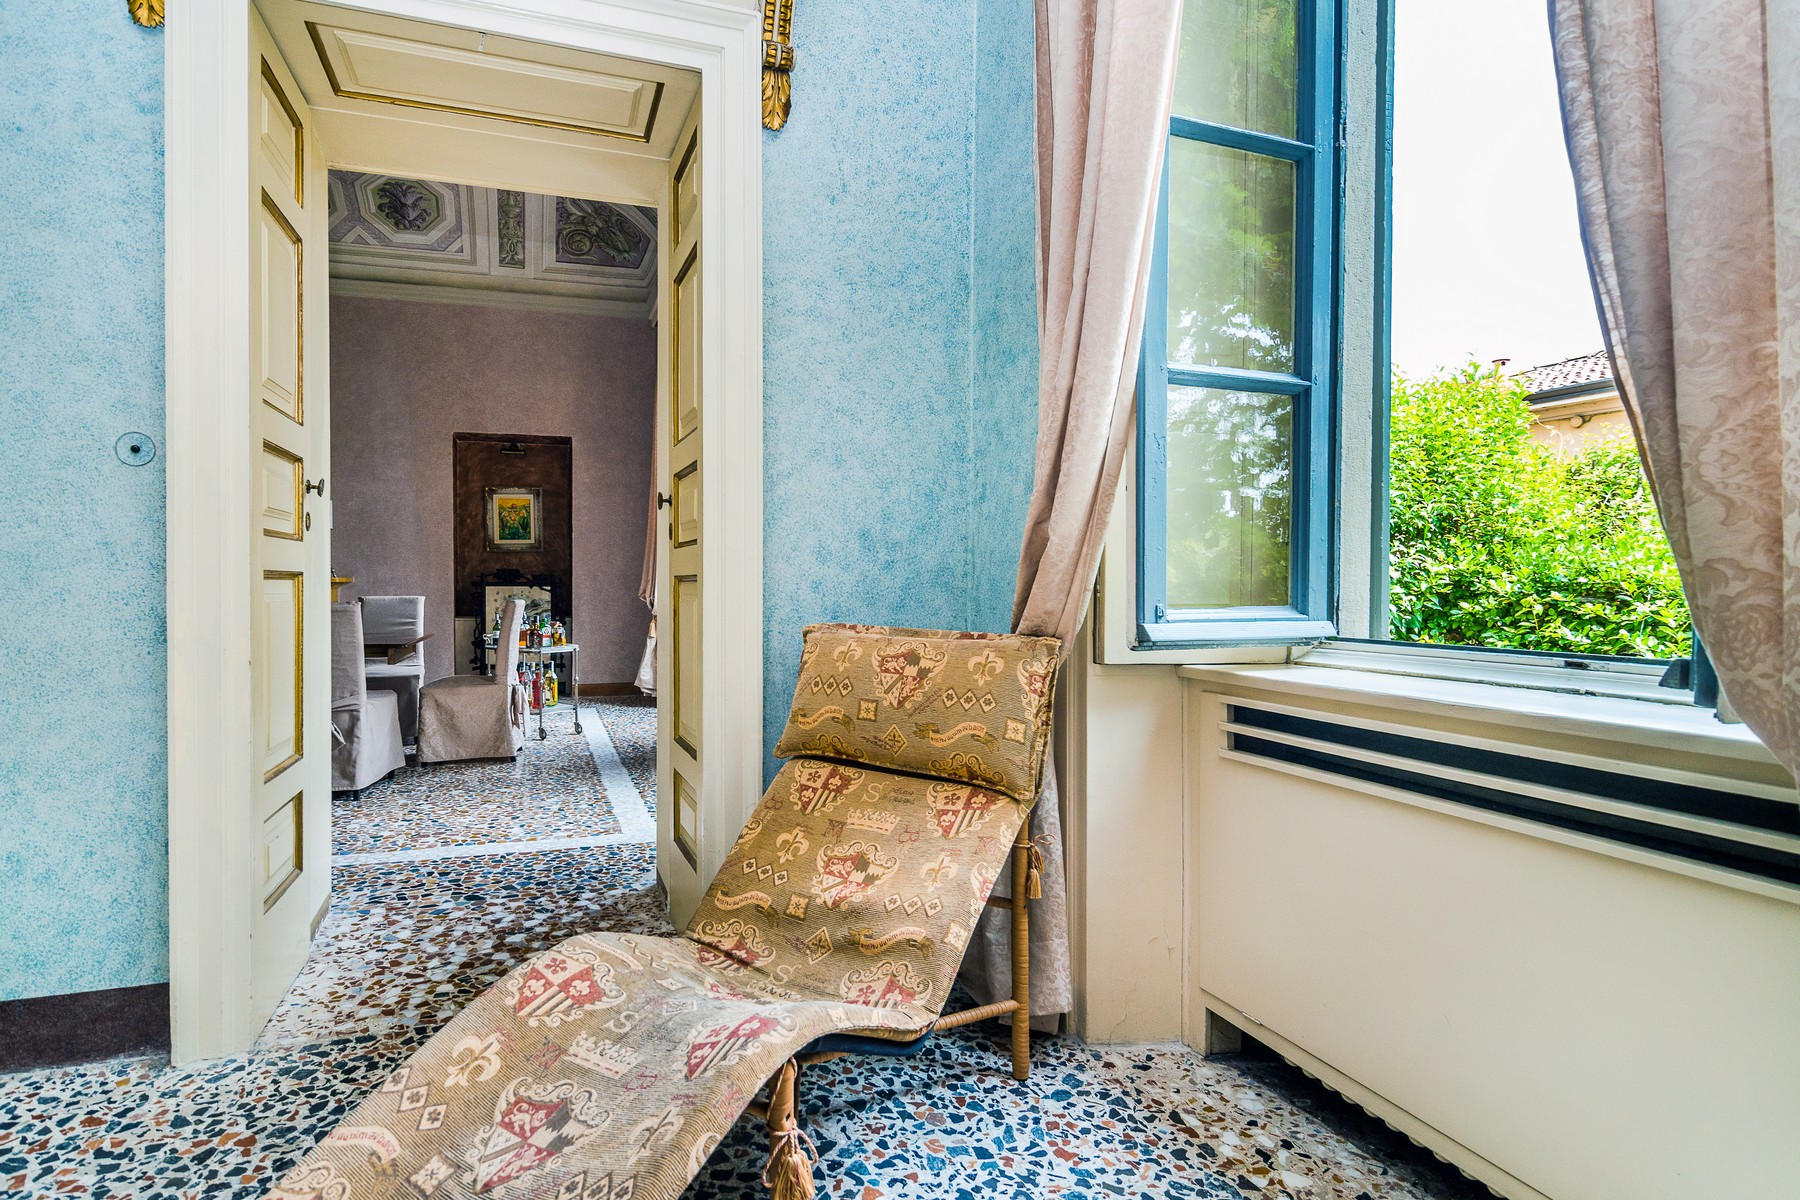 Additional photo for property listing at Stunning property alongside Lake Como Passeggiata Villa Olmo Como, Como 22100 Italien